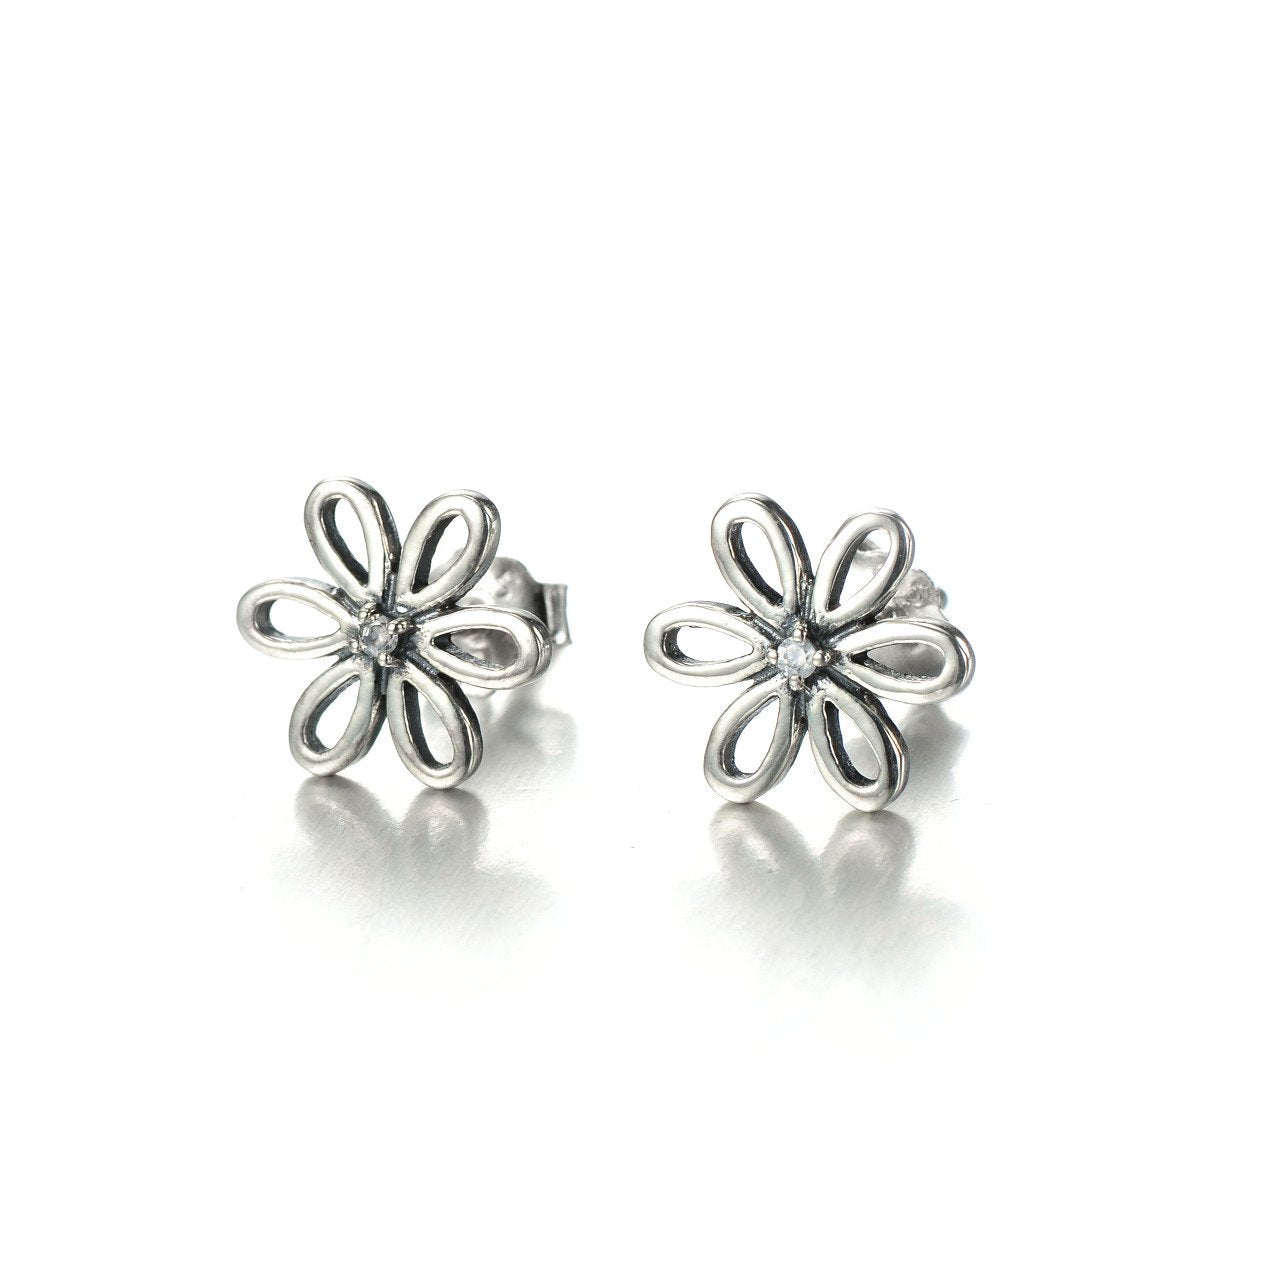 Earring for women, Silver Earrings, Earrings for Party,  Girls Earrings, 925 Sterling Silver Flower Stud Earrings-Jewelry